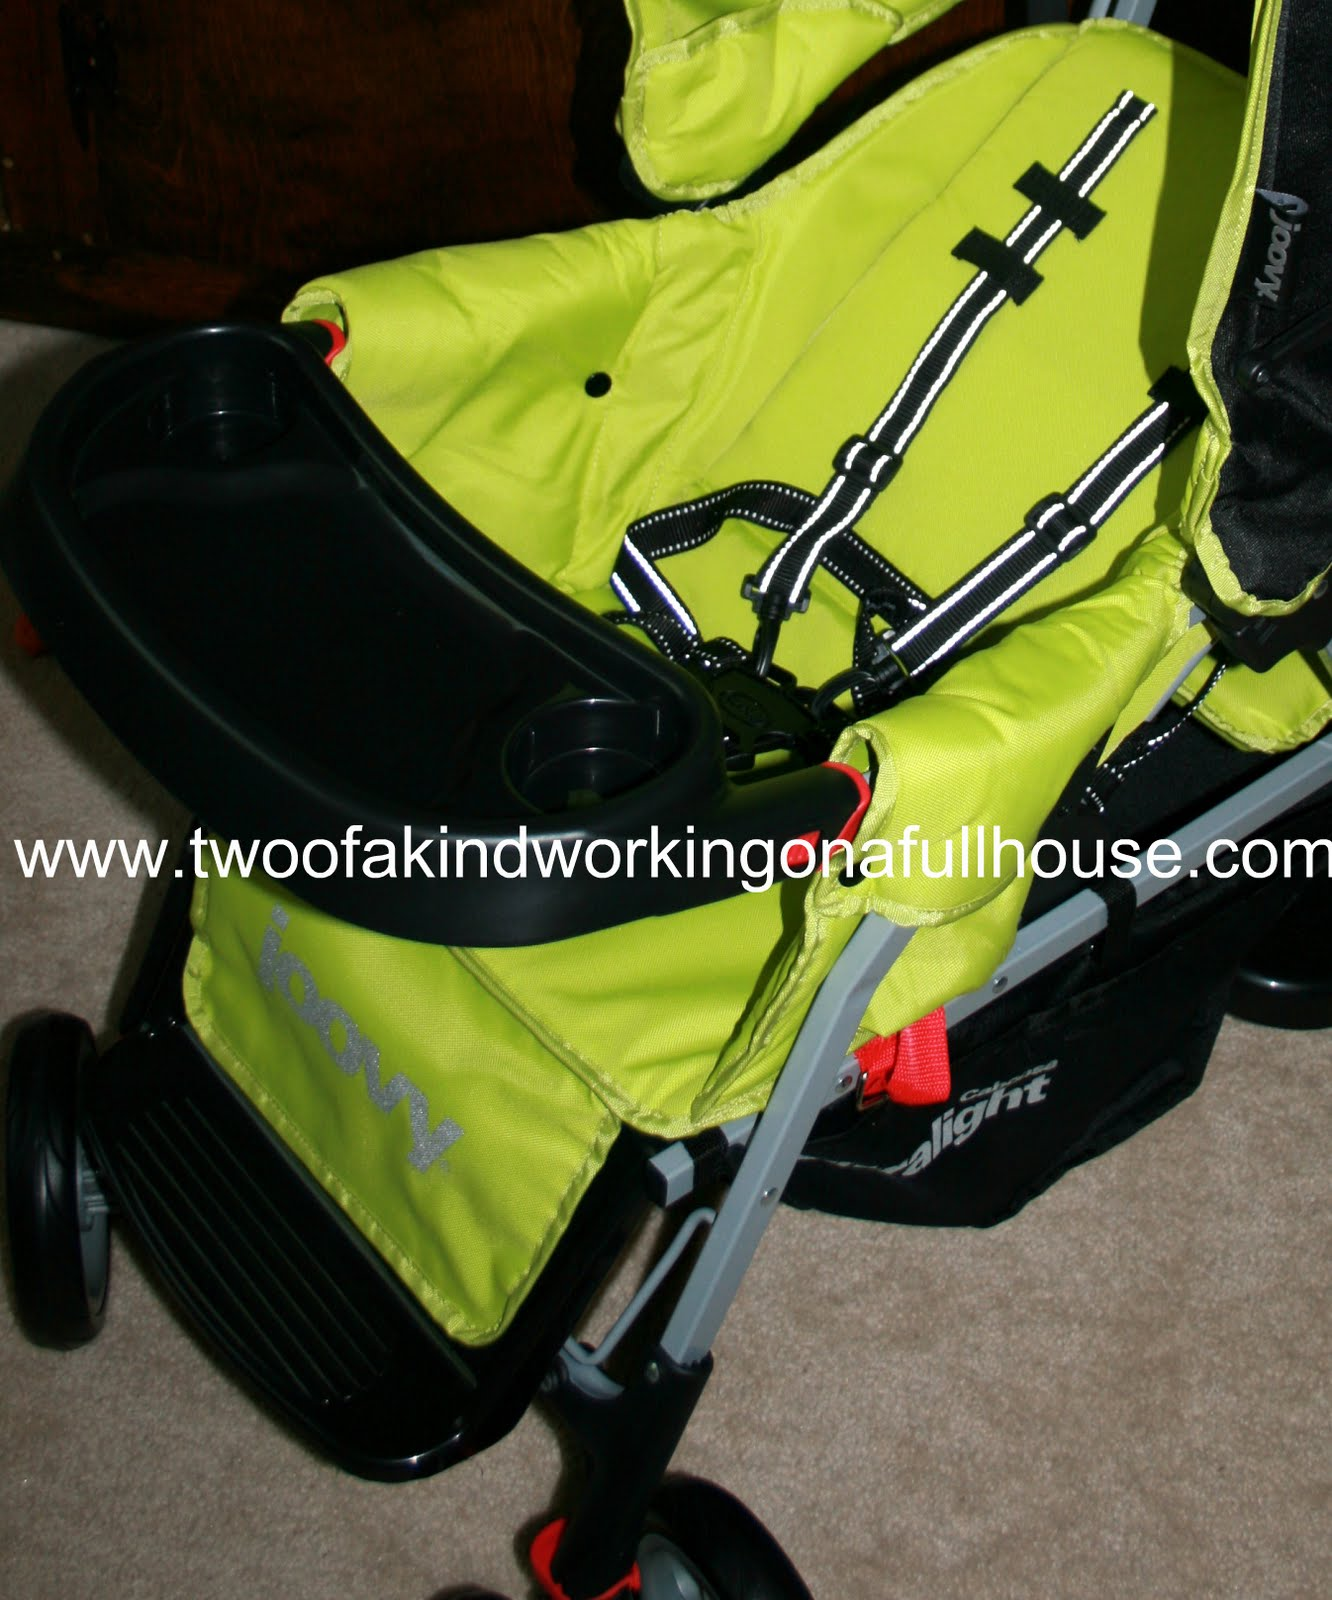 joovy 2010 ultralight caboose tandem stand on stroller review and coupon code two of a kind. Black Bedroom Furniture Sets. Home Design Ideas